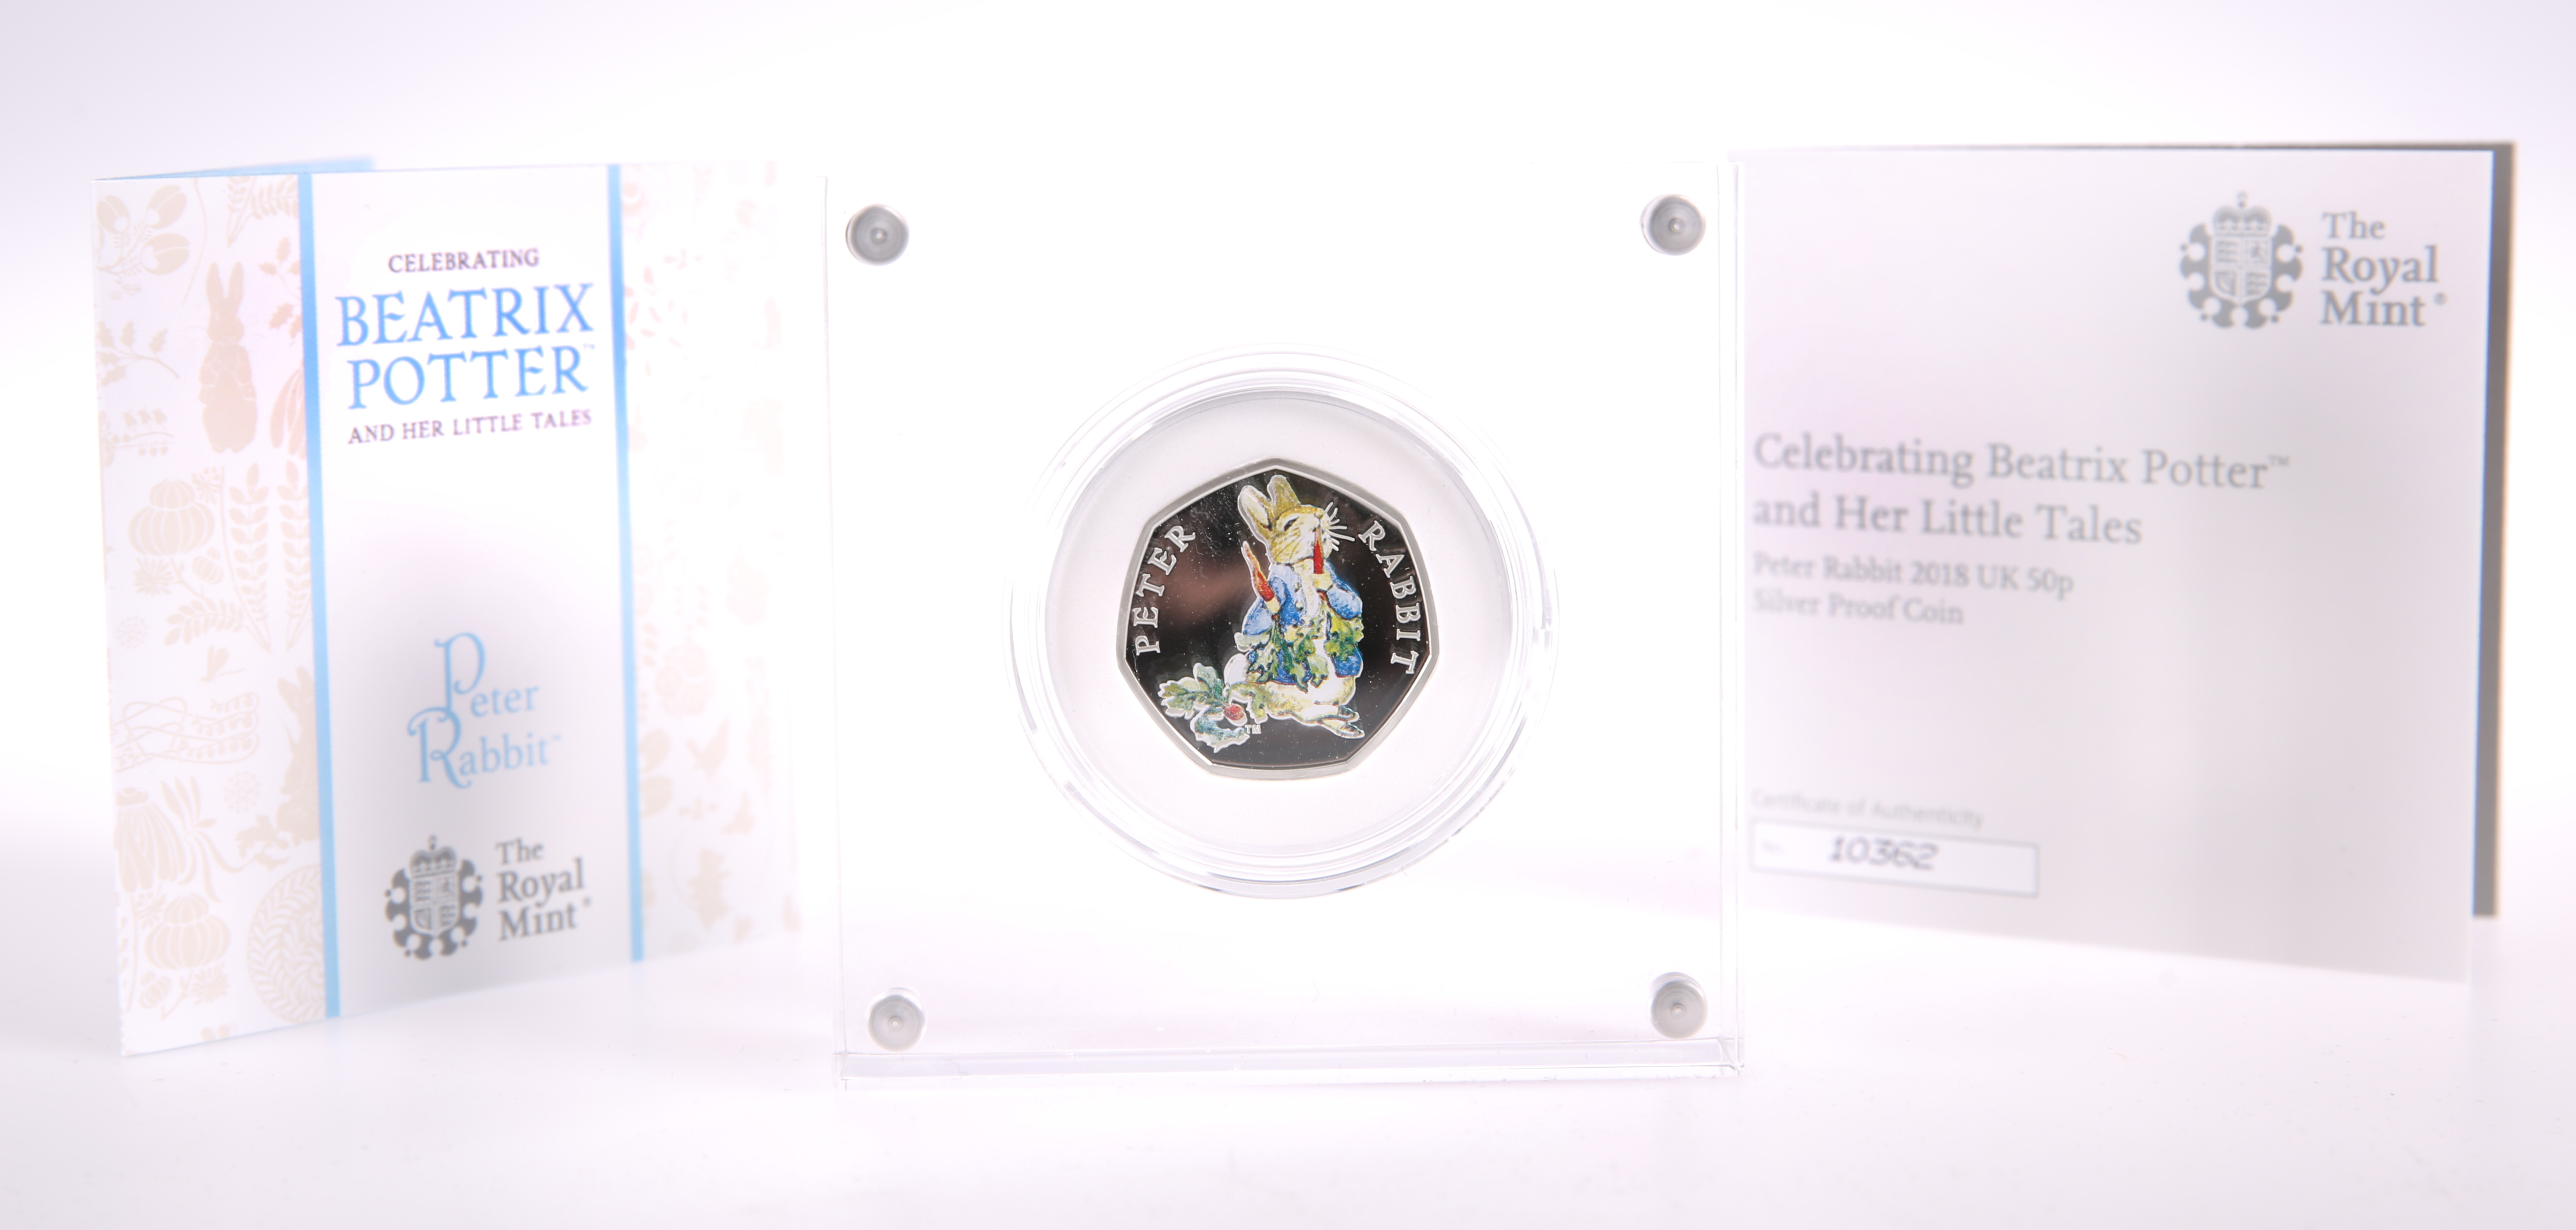 A ROYAL MINT PETER RABBIT 2018 50P SILVER PROOF COIN, boxed with COA no. 10362